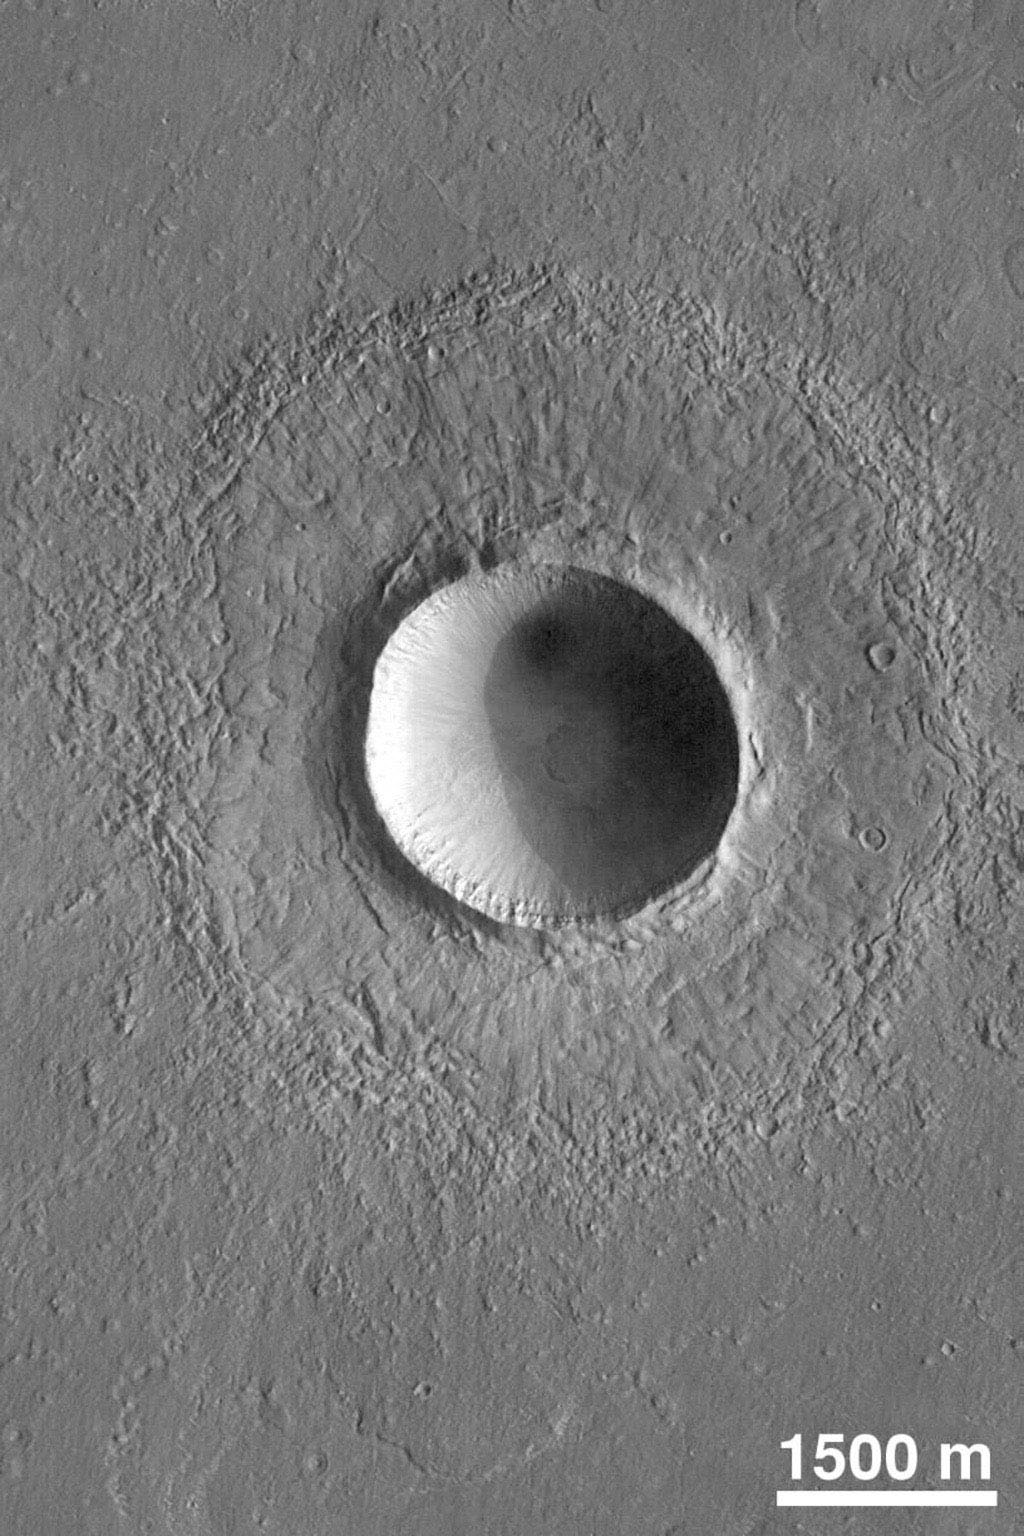 NASA's Mars Global Surveyor shows a crater on northern Elysium Planitia on Mars, a little more than twice the diameter of the famous Meteor Crater in Arizona, U.S.A. It formed by the impact and subsequent explosion of a meteorite.